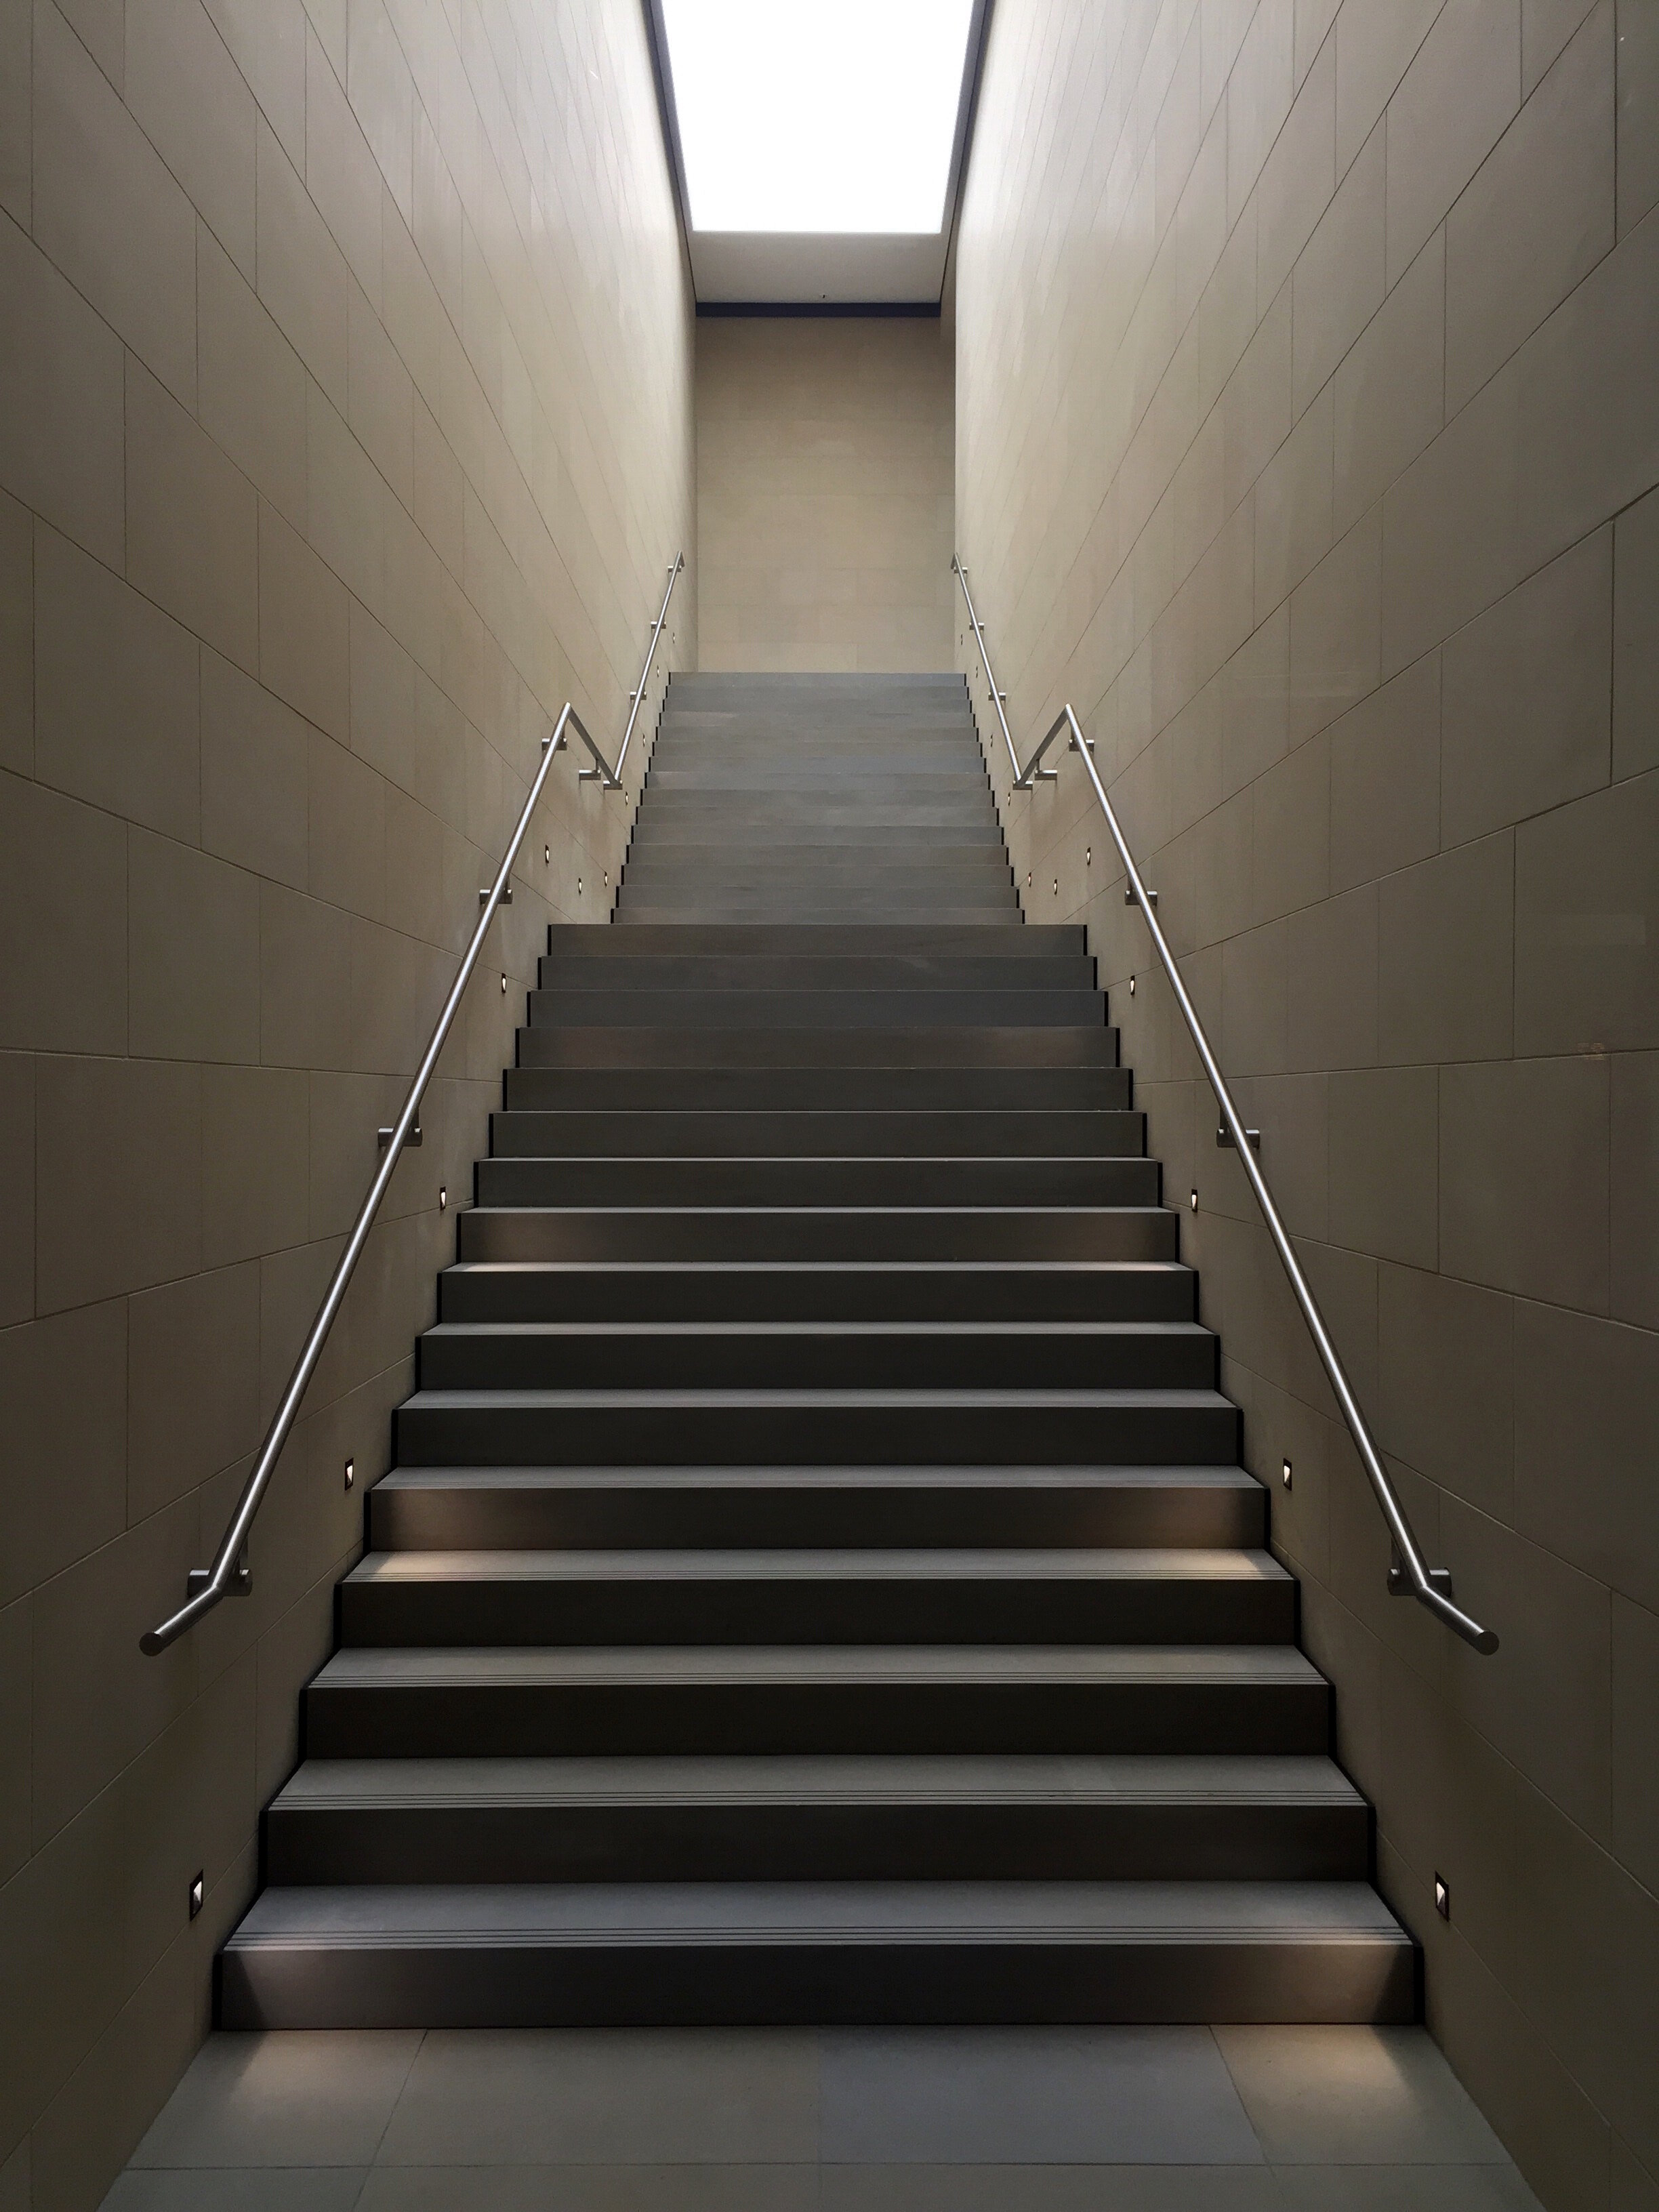 stairs going up to the outside